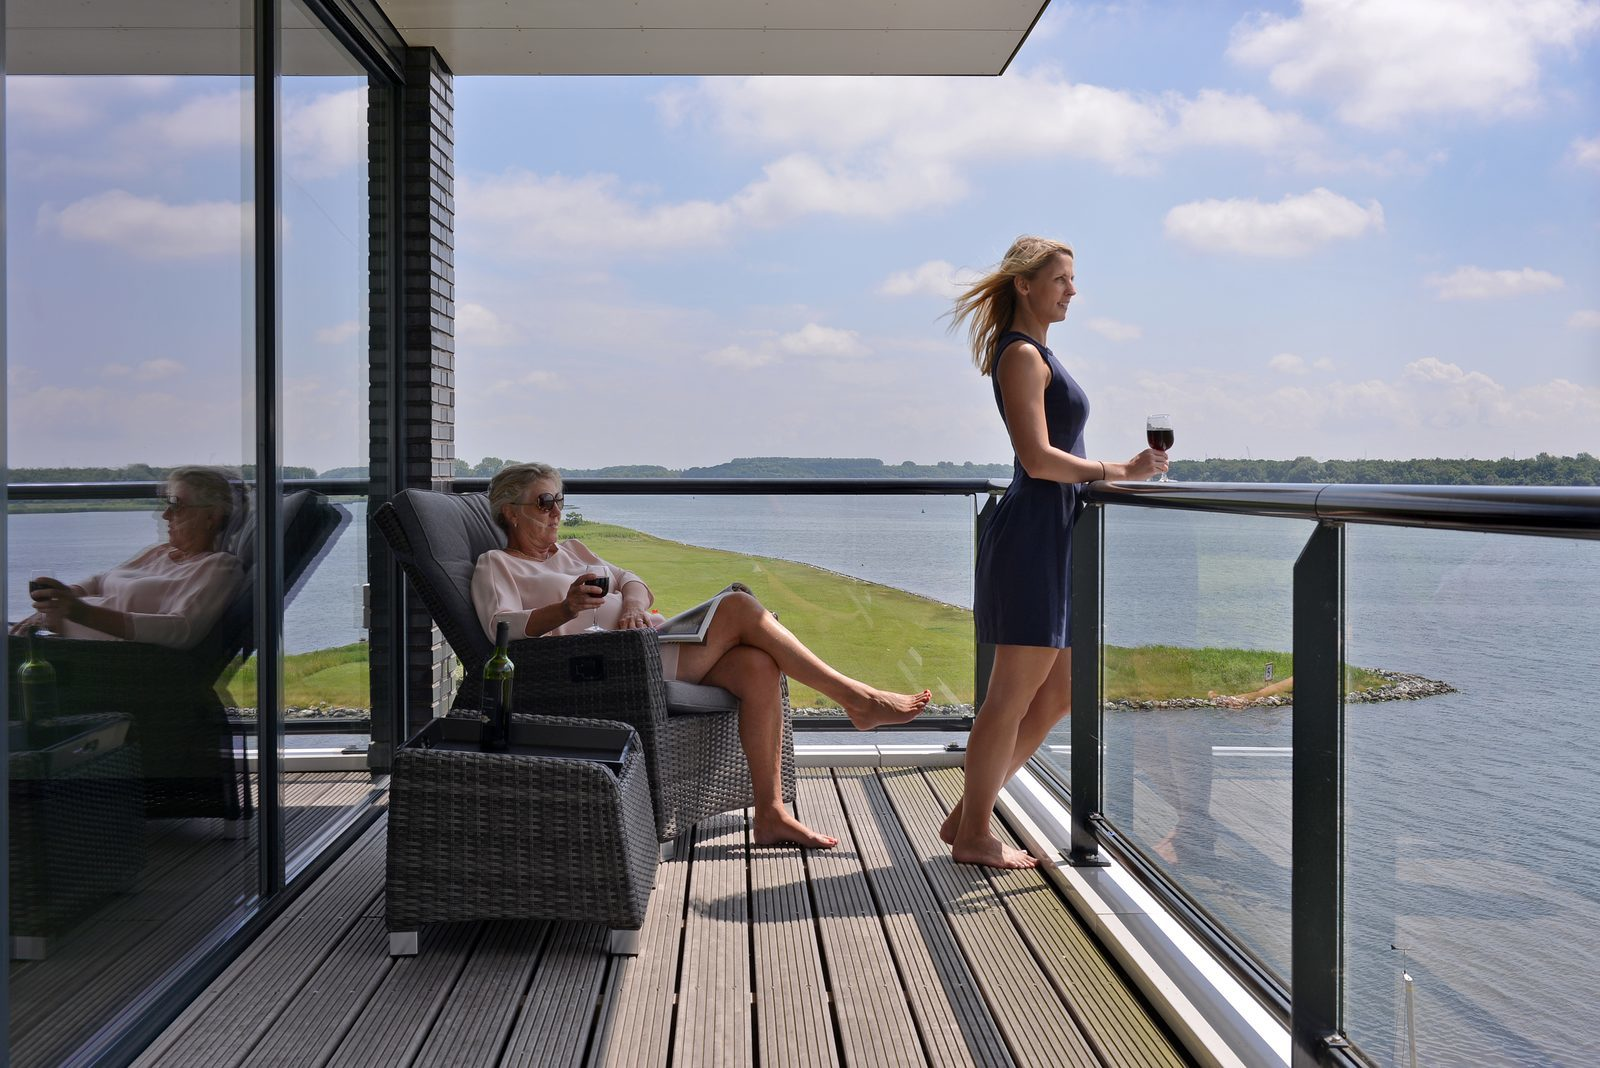 Luxury holiday at the Veerse meer